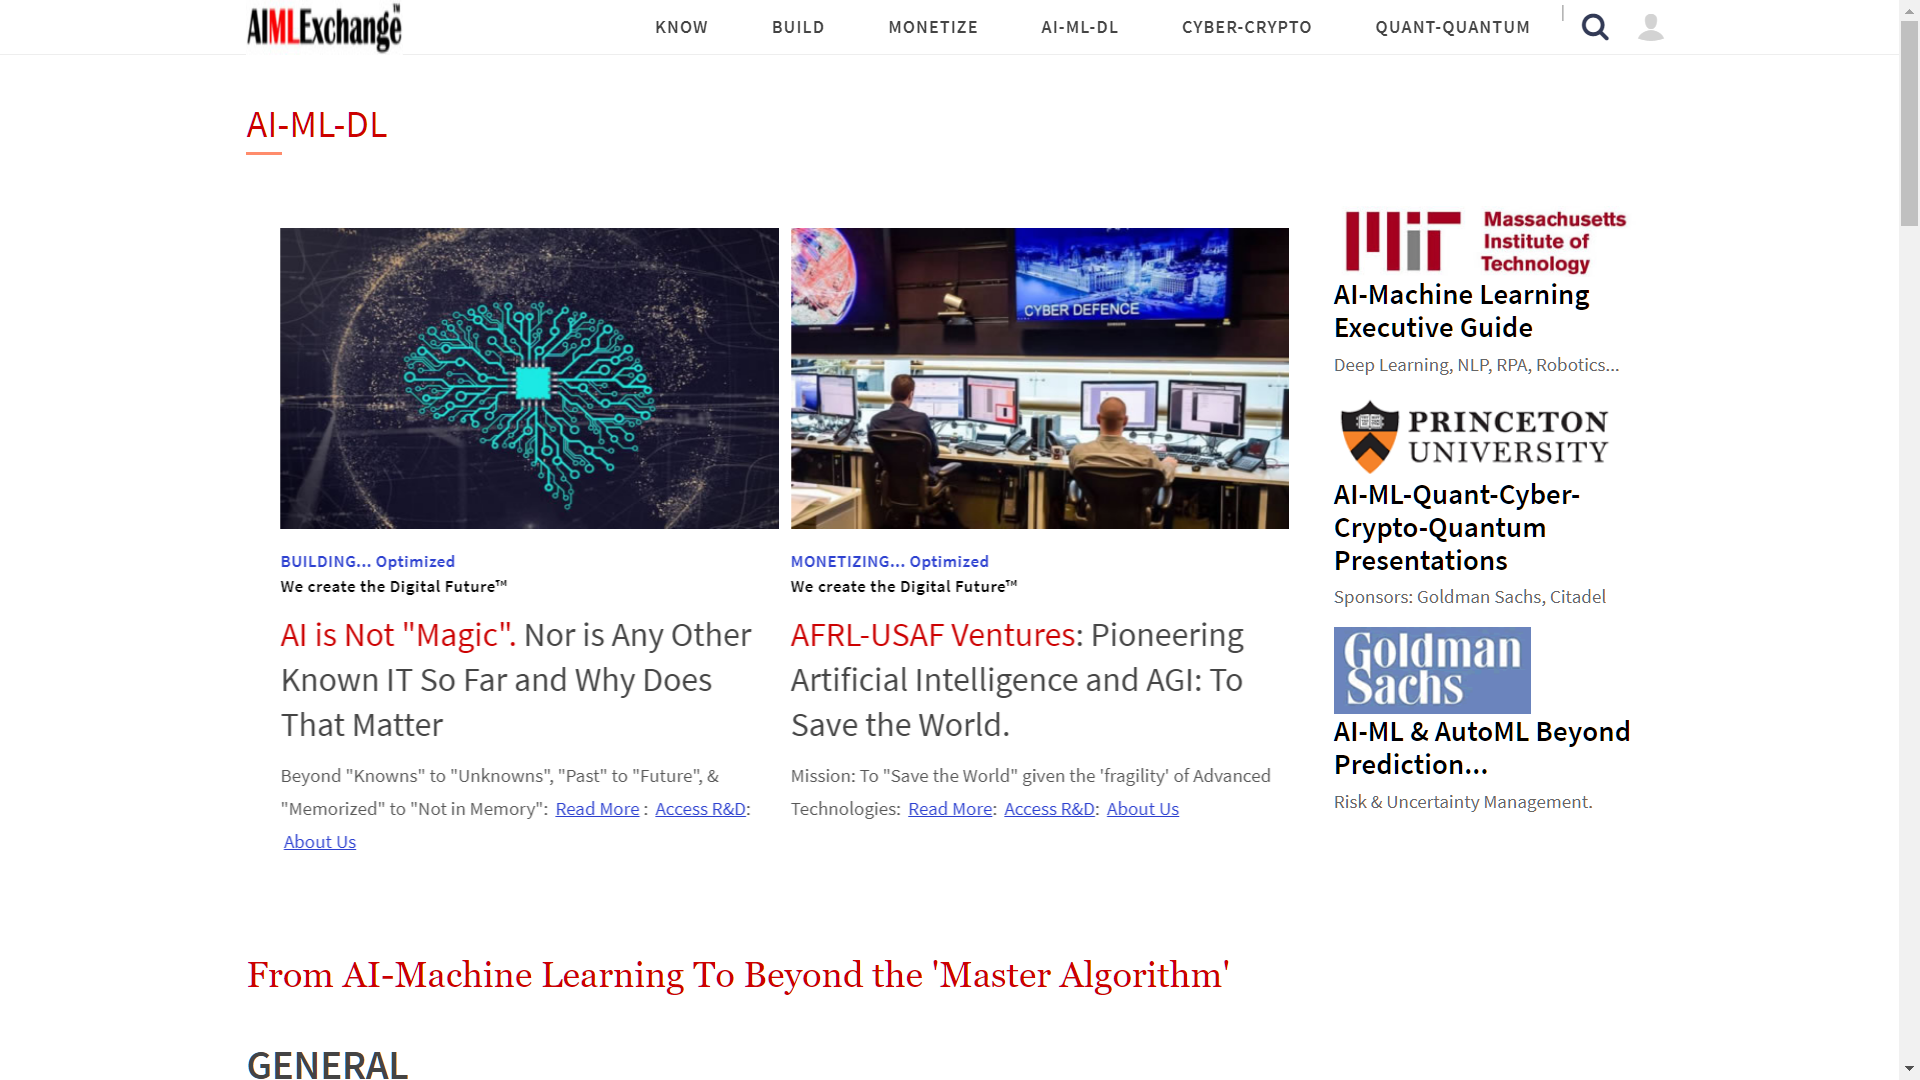 AIMLExchange™: From AI-Machine Learning To Beyond the 'Master Algorithm'.